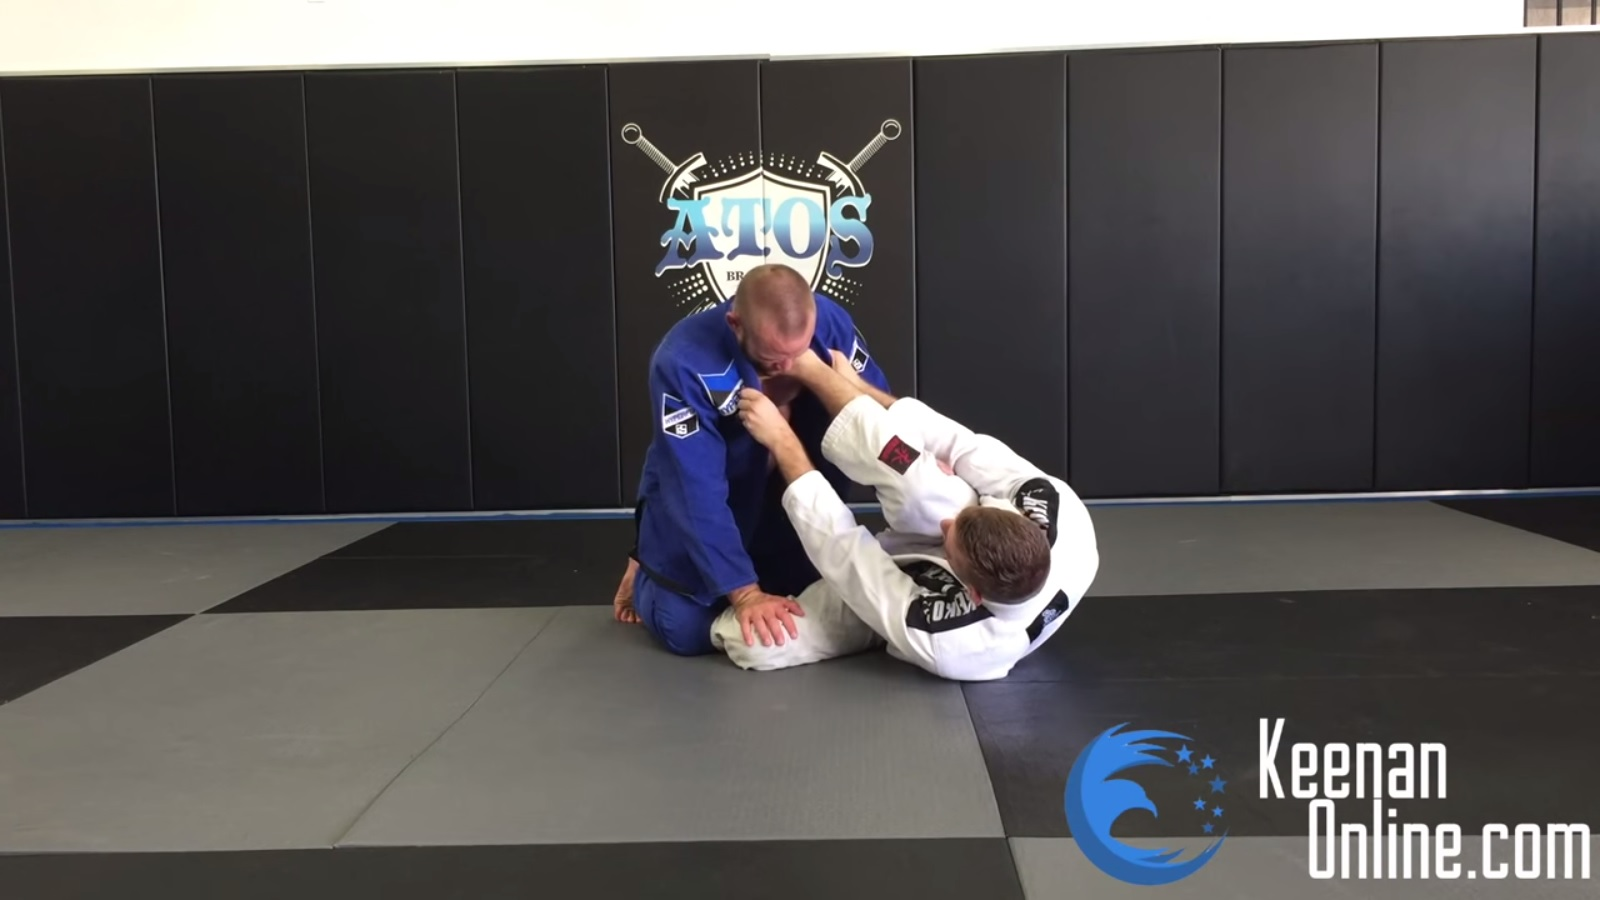 This Choke Using Your Foot Makes Training Partners Really Mad